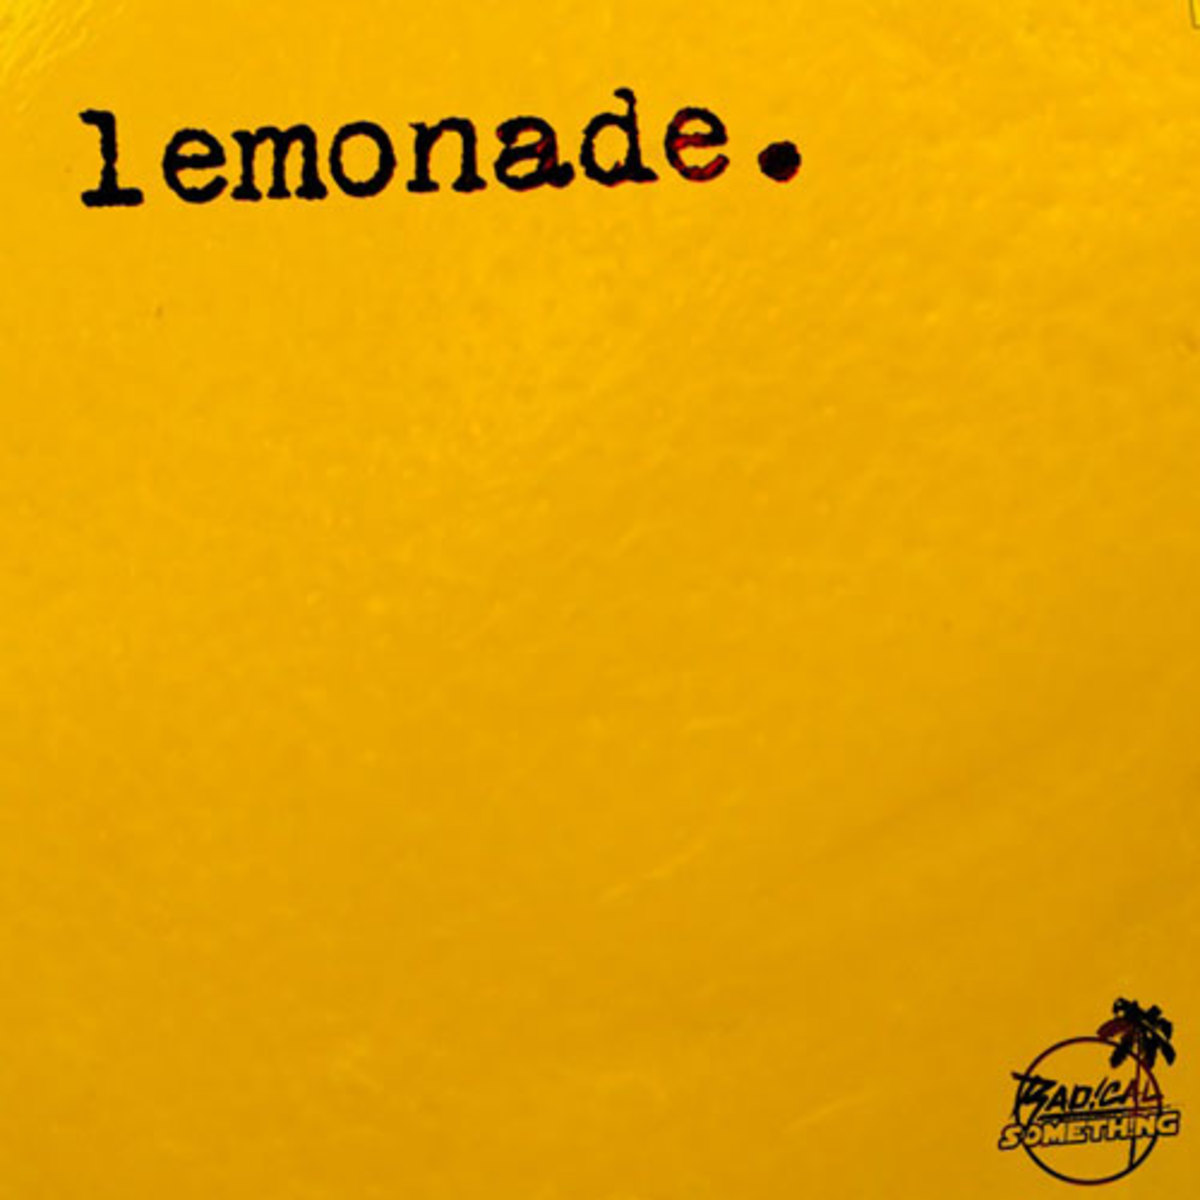 radicalsomething-lemonade.jpg